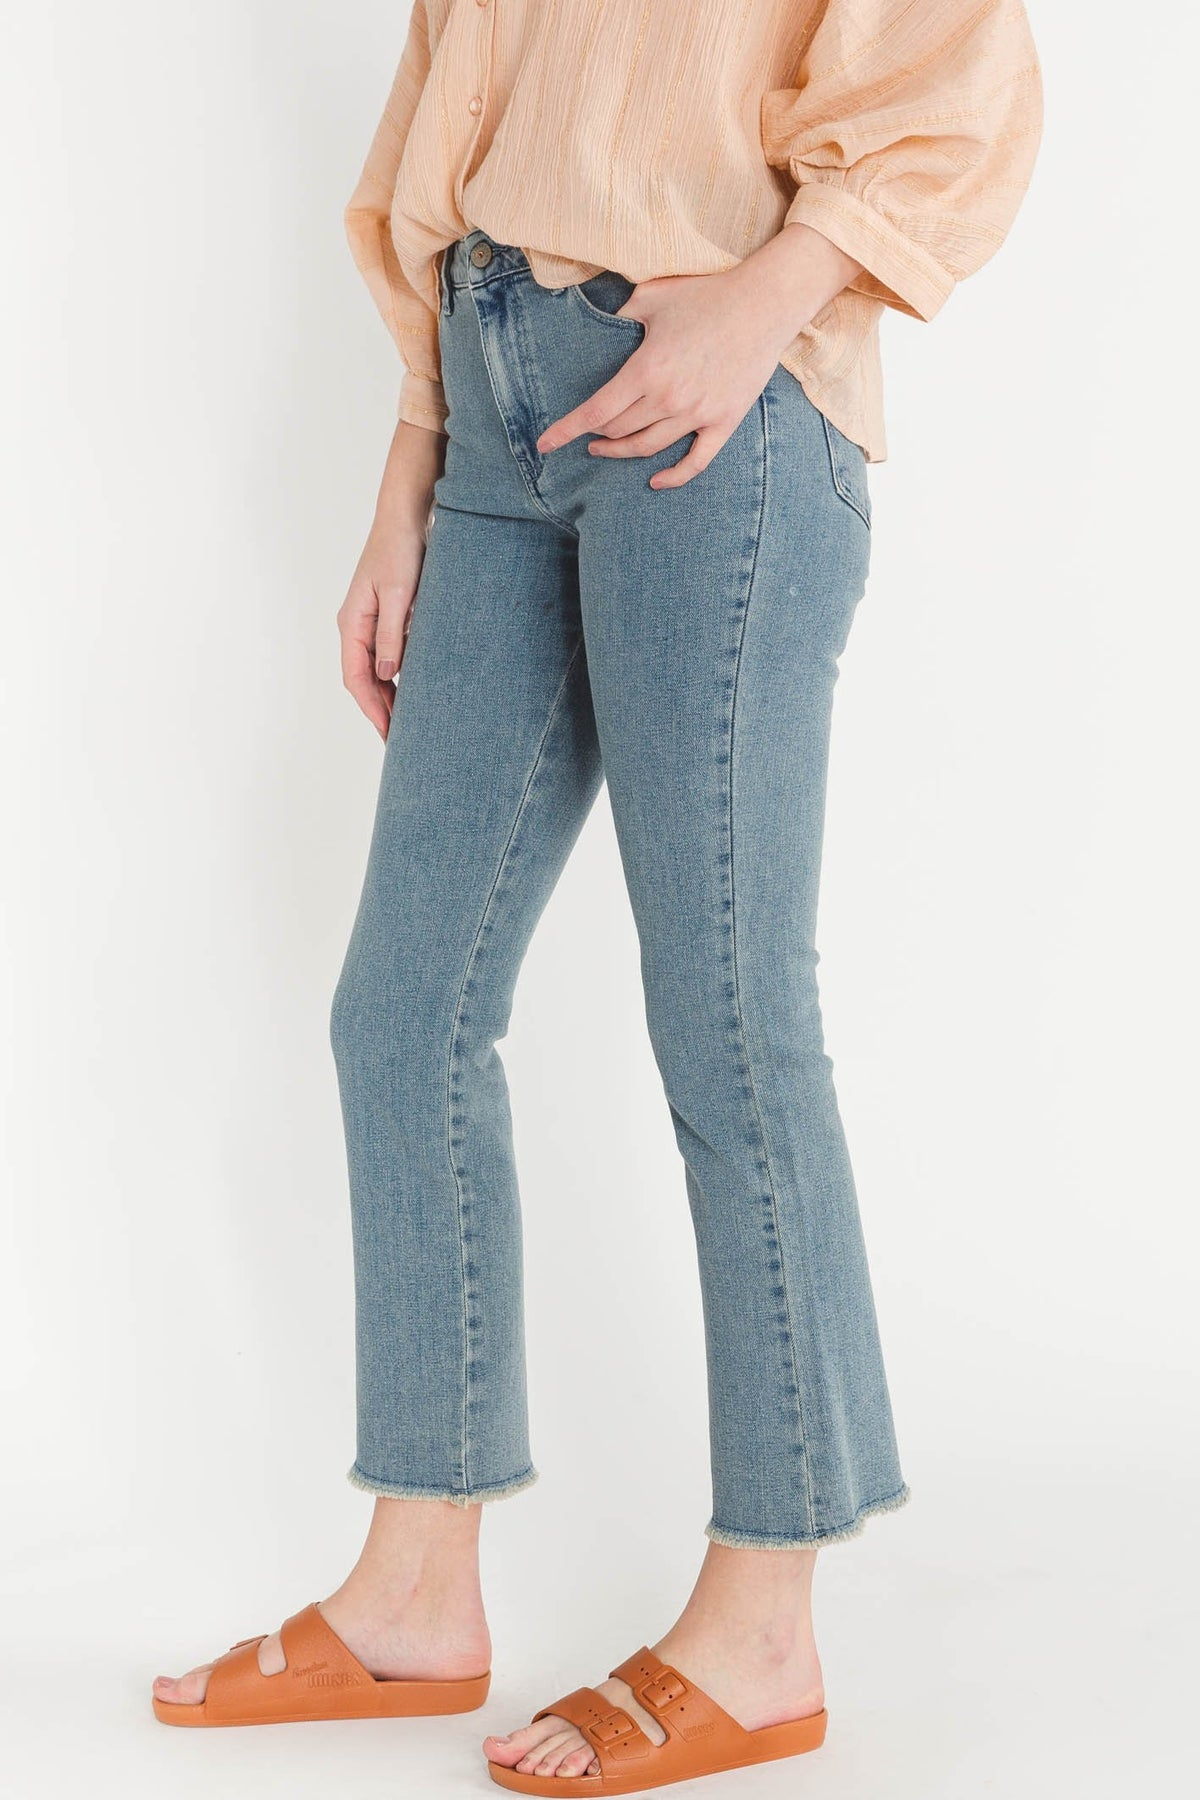 Maxine Jeans Bleach - Kanope - ankle length straight leg blue jeans flare